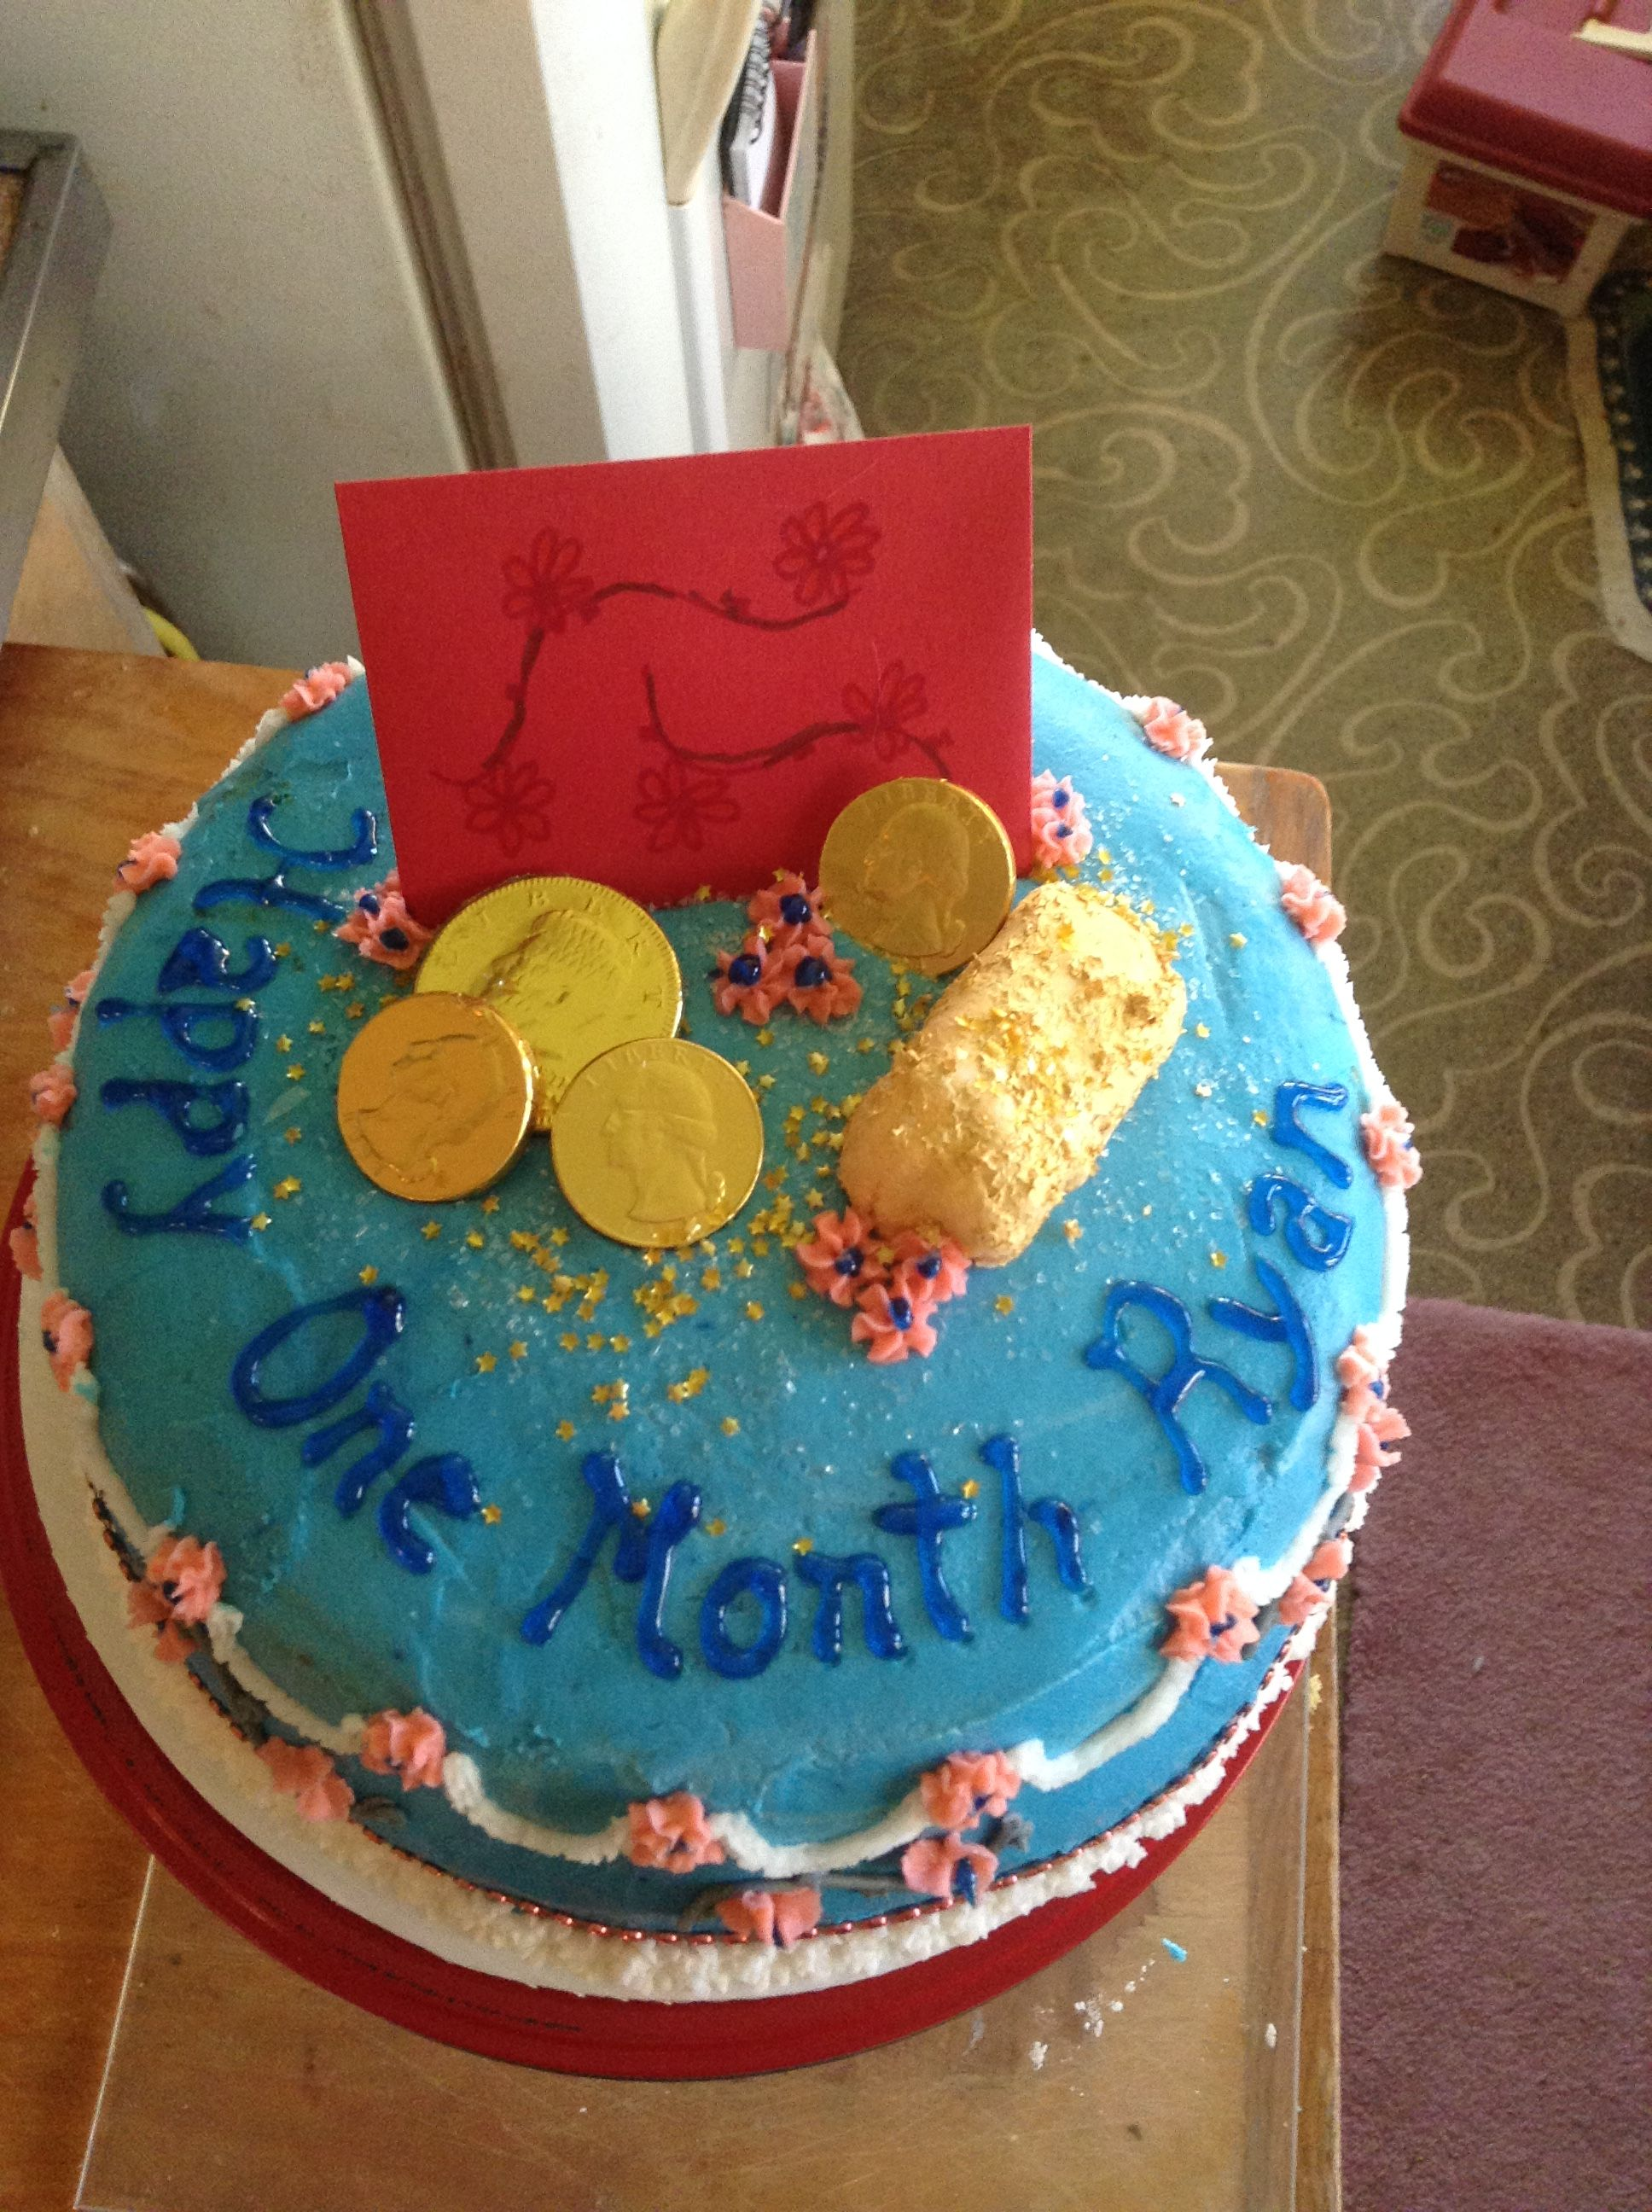 This Cake Was Made For A One Month Birthday Celebration It S A Chinese Tradition To Hold A One Month Birthday Celebr Cake Cake Decorating Birthday Celebration